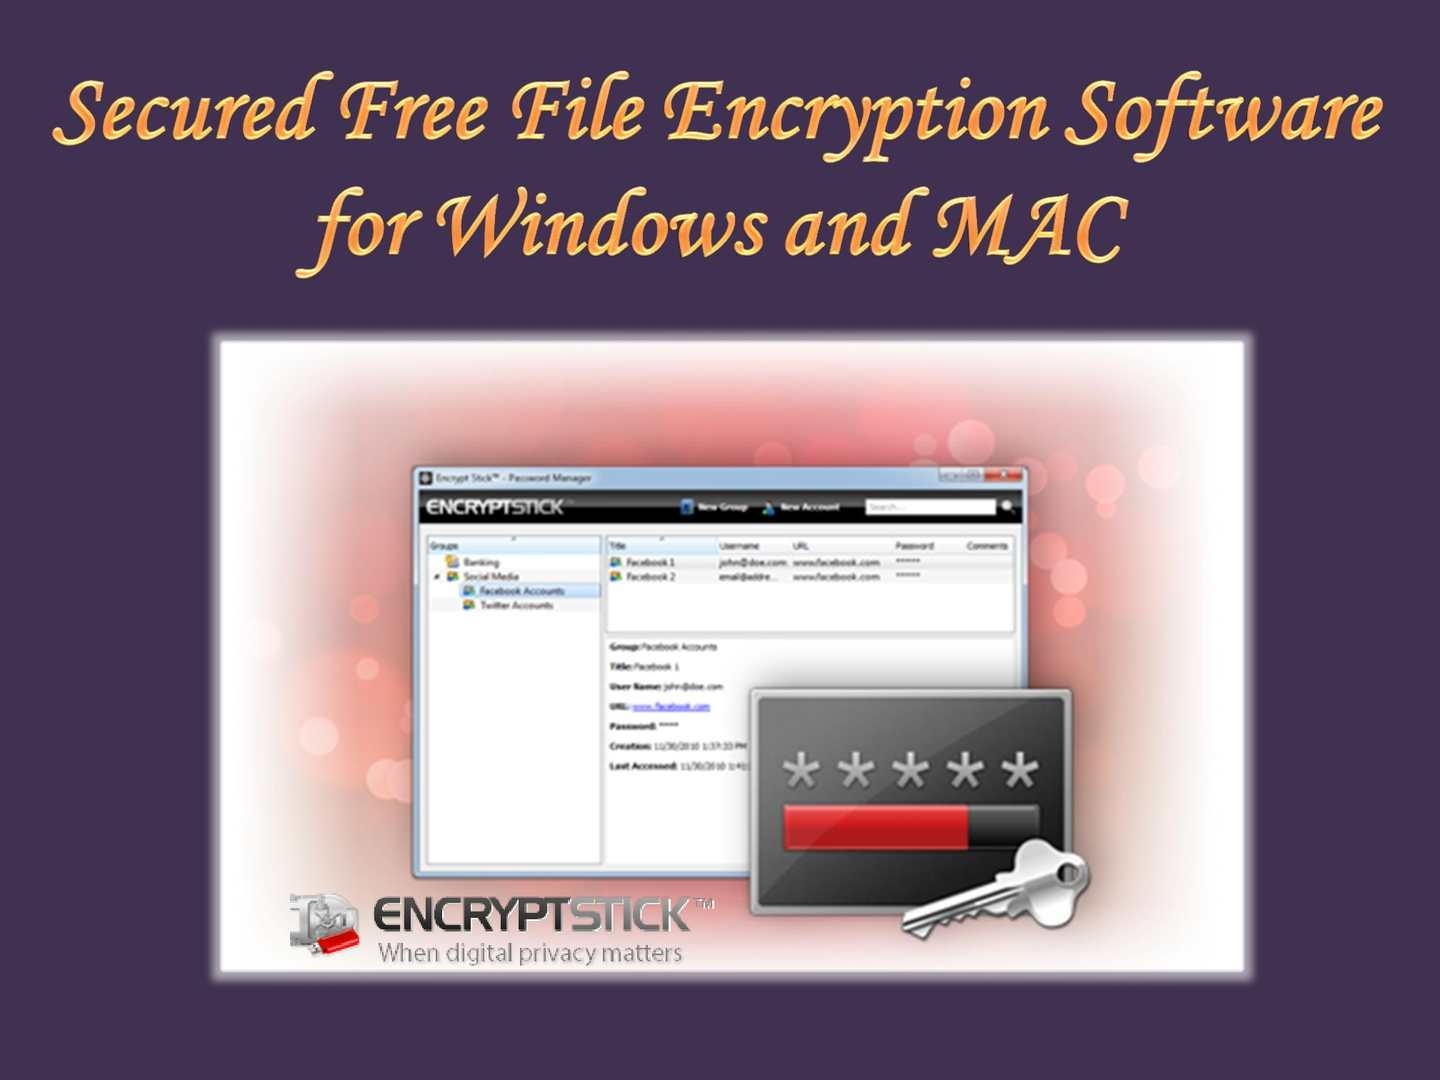 Calaméo - Secured Free File Encryption Software for Windows